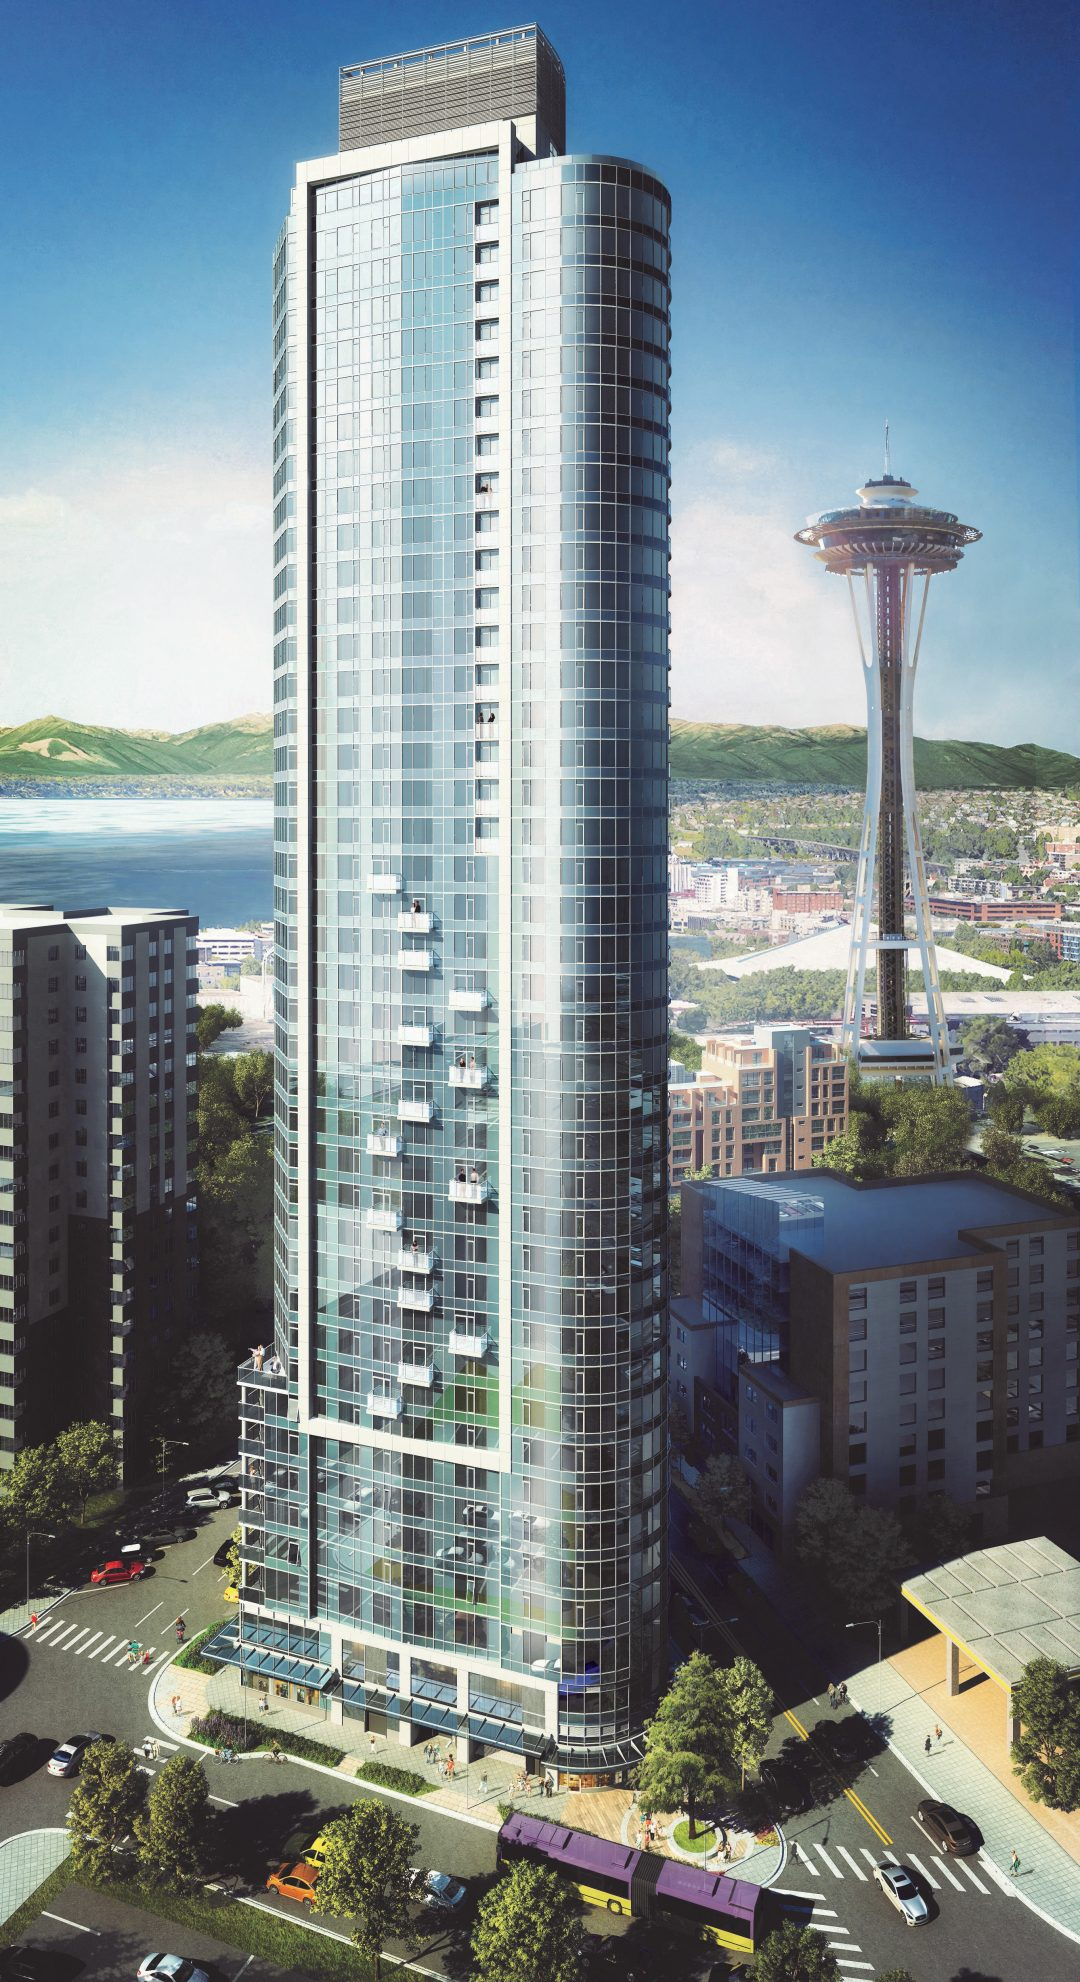 PICTURED ABOVE: The  SPIRE Condominium development was recently announced as a condominium for sale, which is now under construction for occupancy in late 2020.